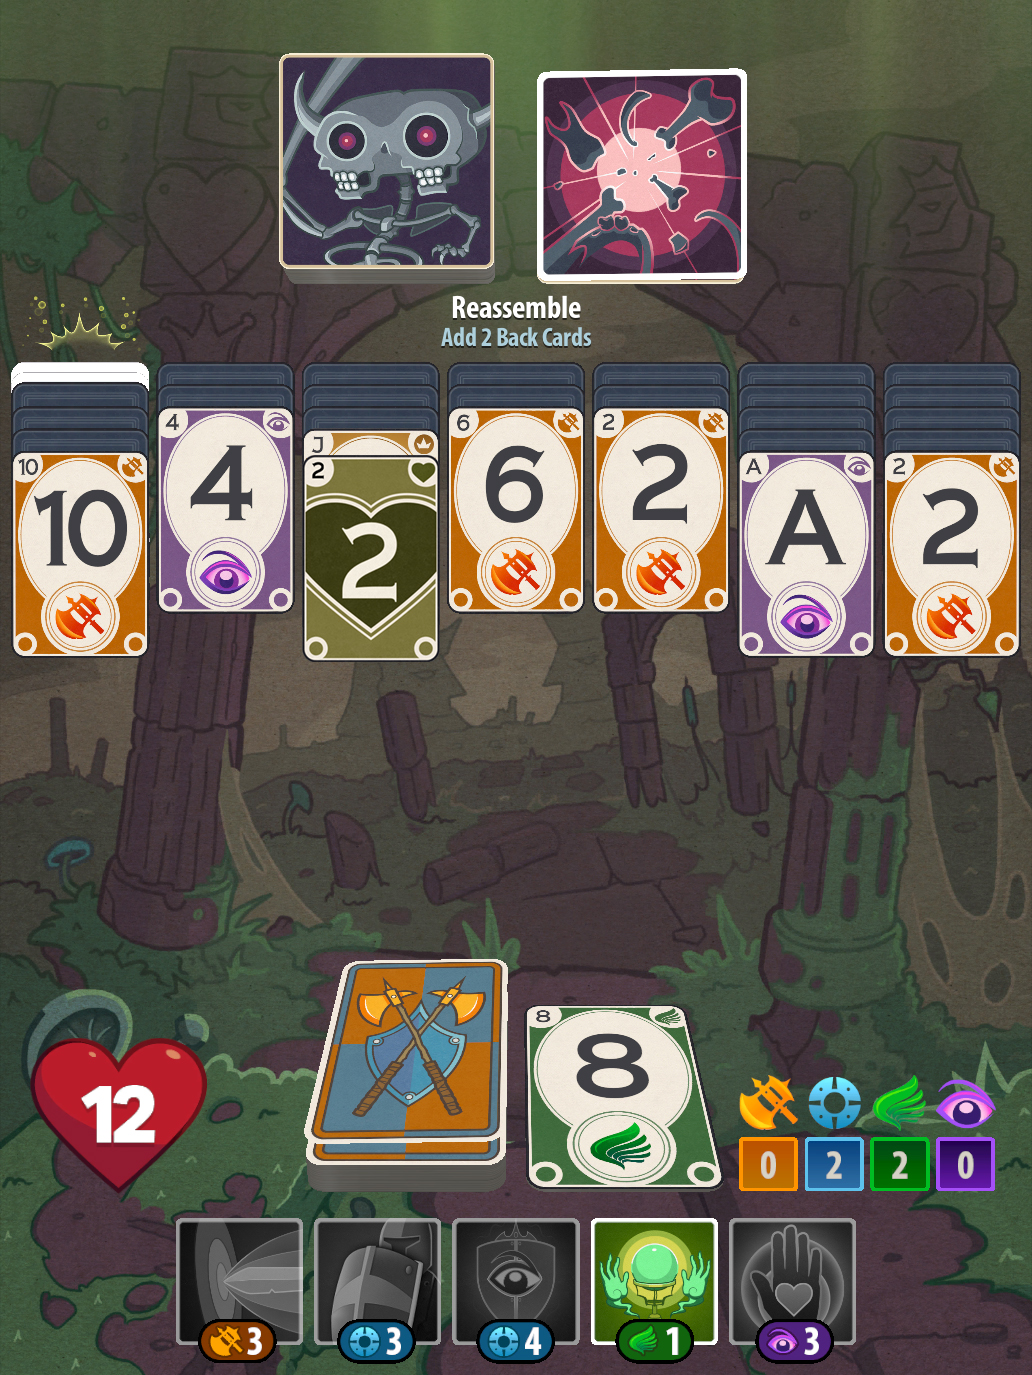 Solitairica brings its blend of solitaire and RPG to iOS on August 25th